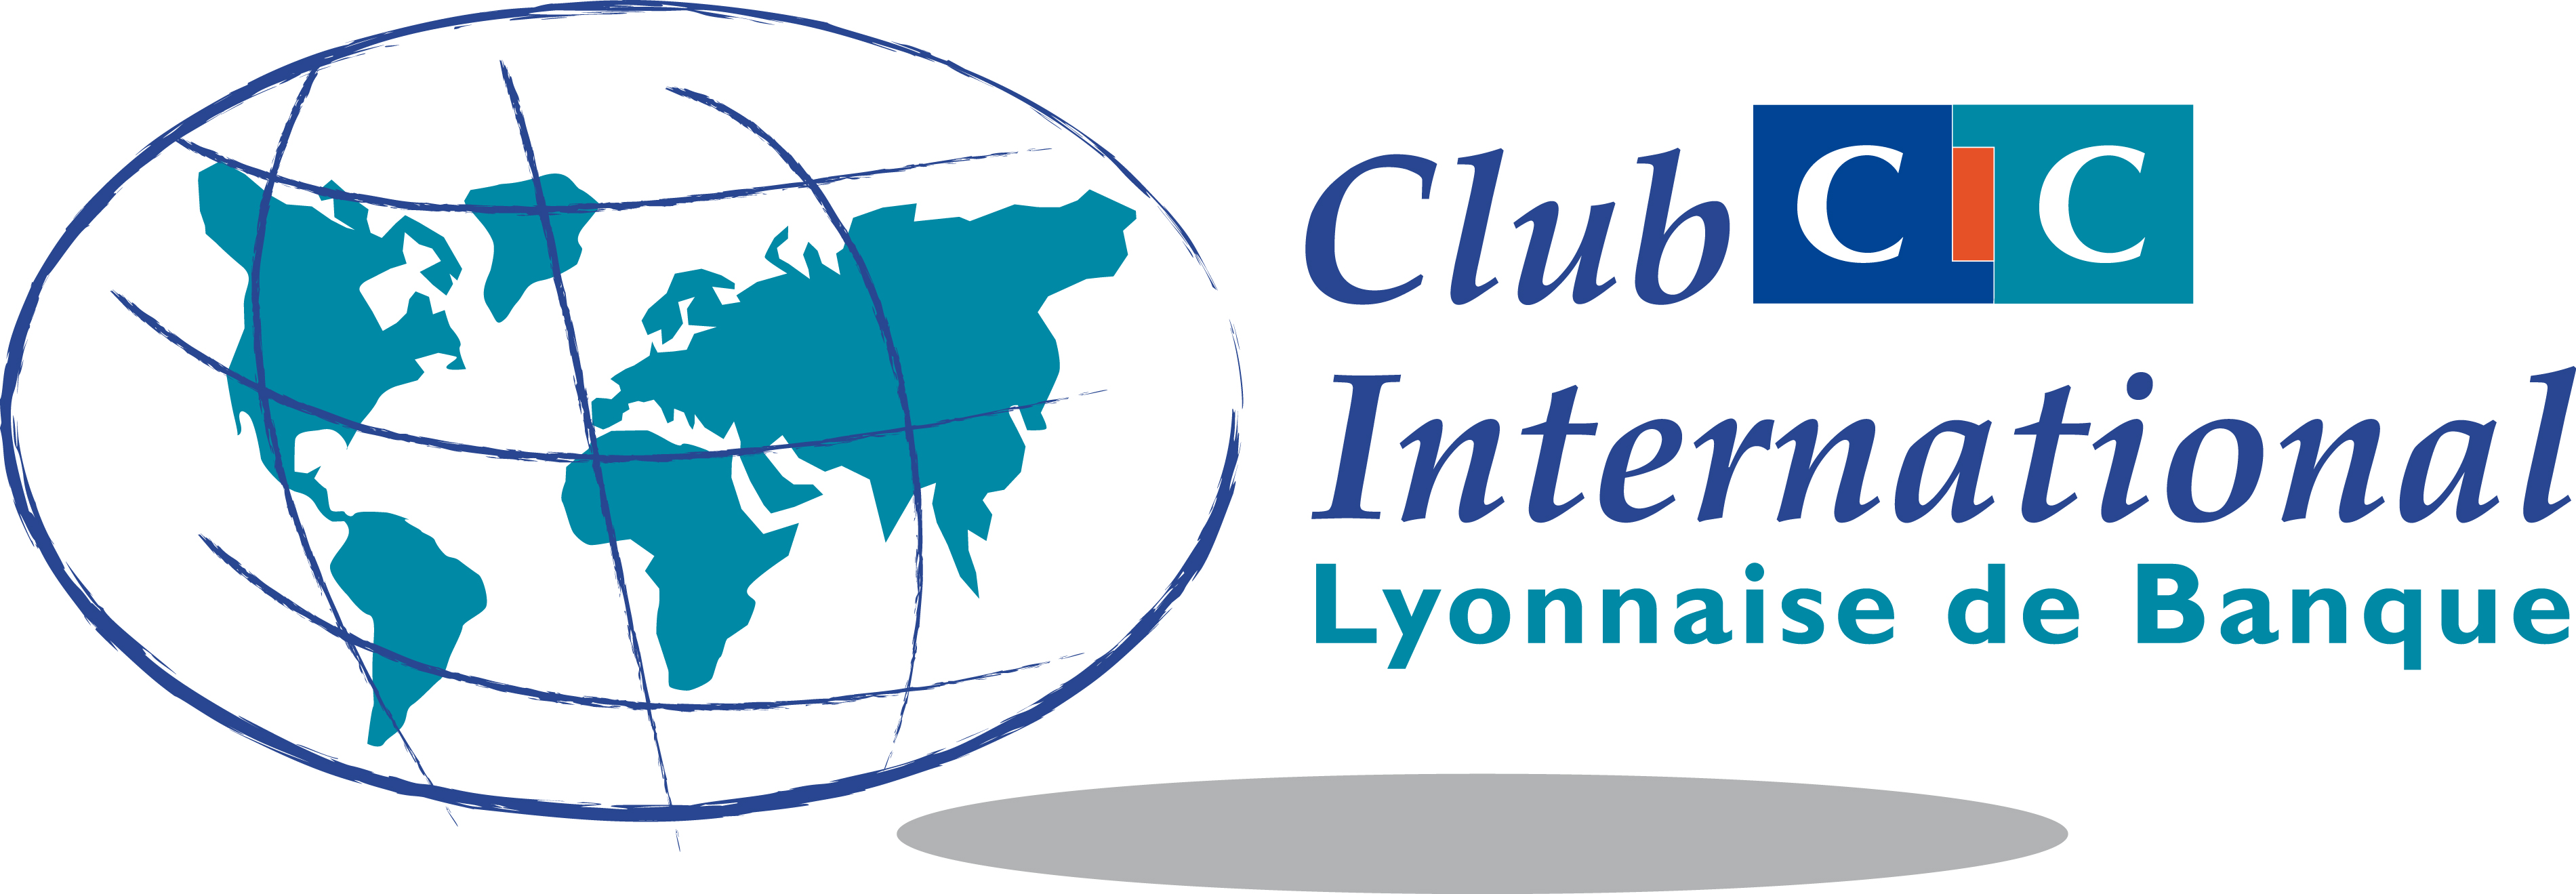 CIC_club_international_logo